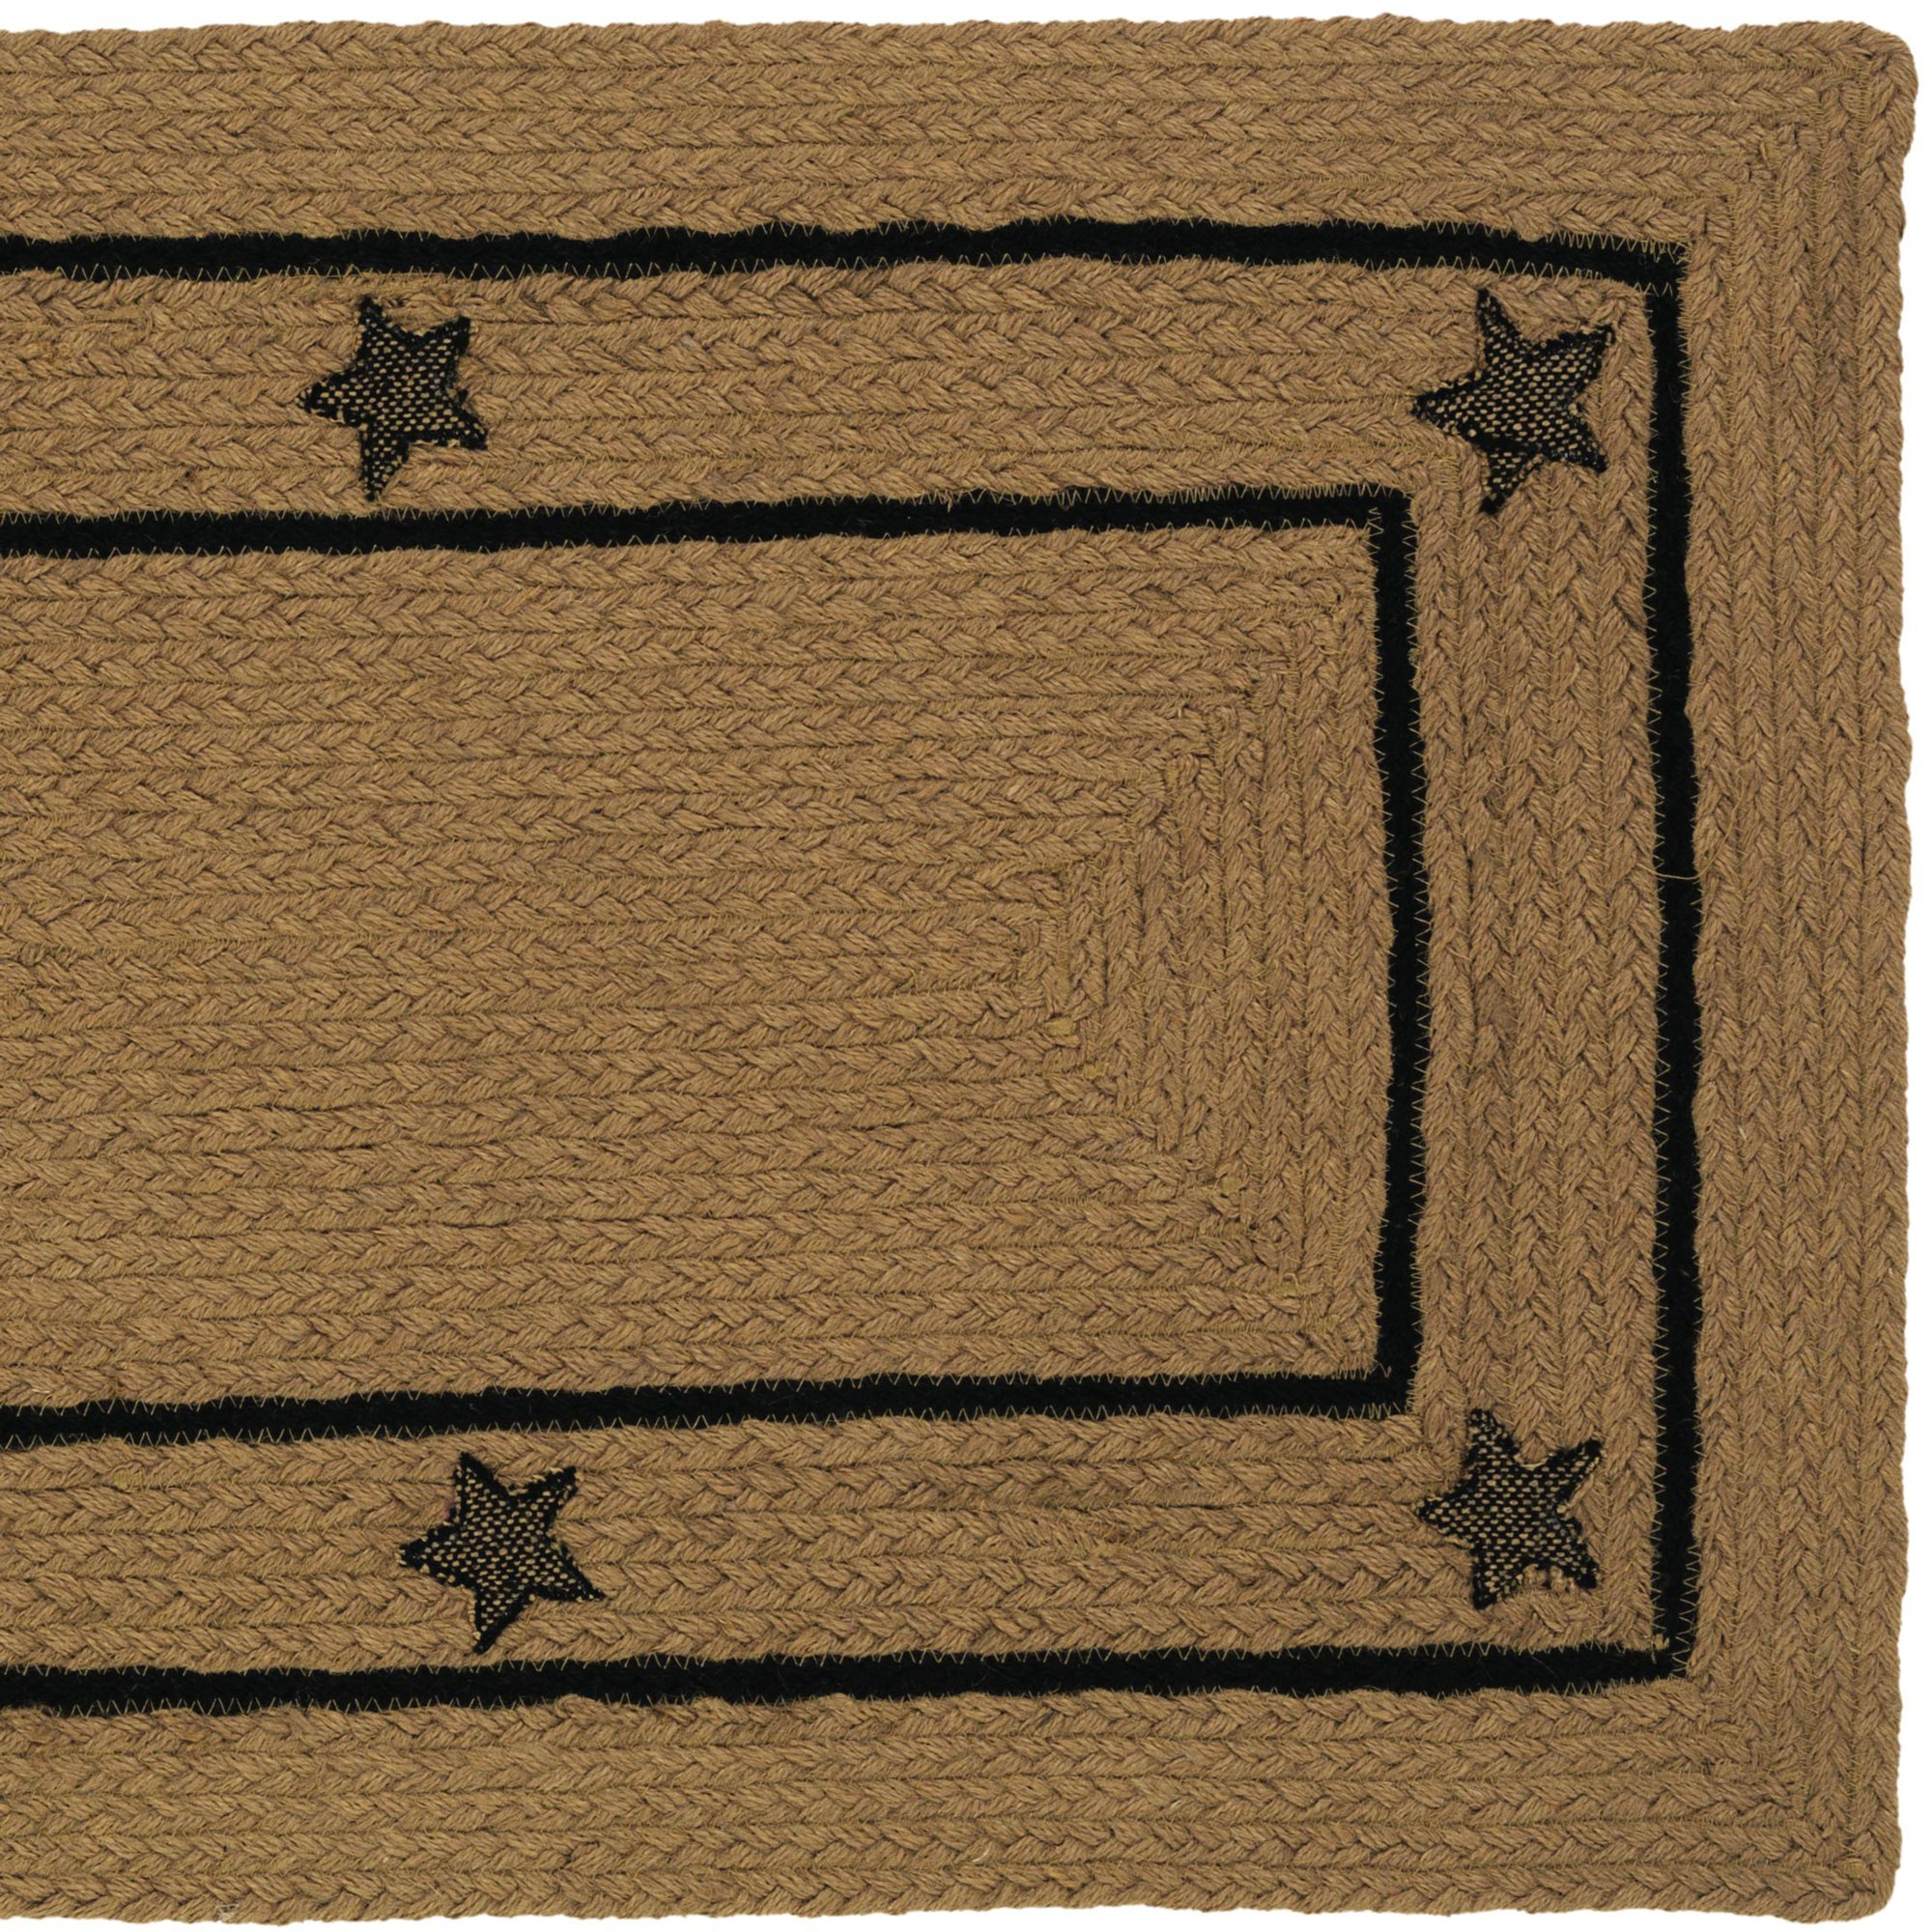 High Quality Braided Rug Burlap Star Jute Country Primitive IHF